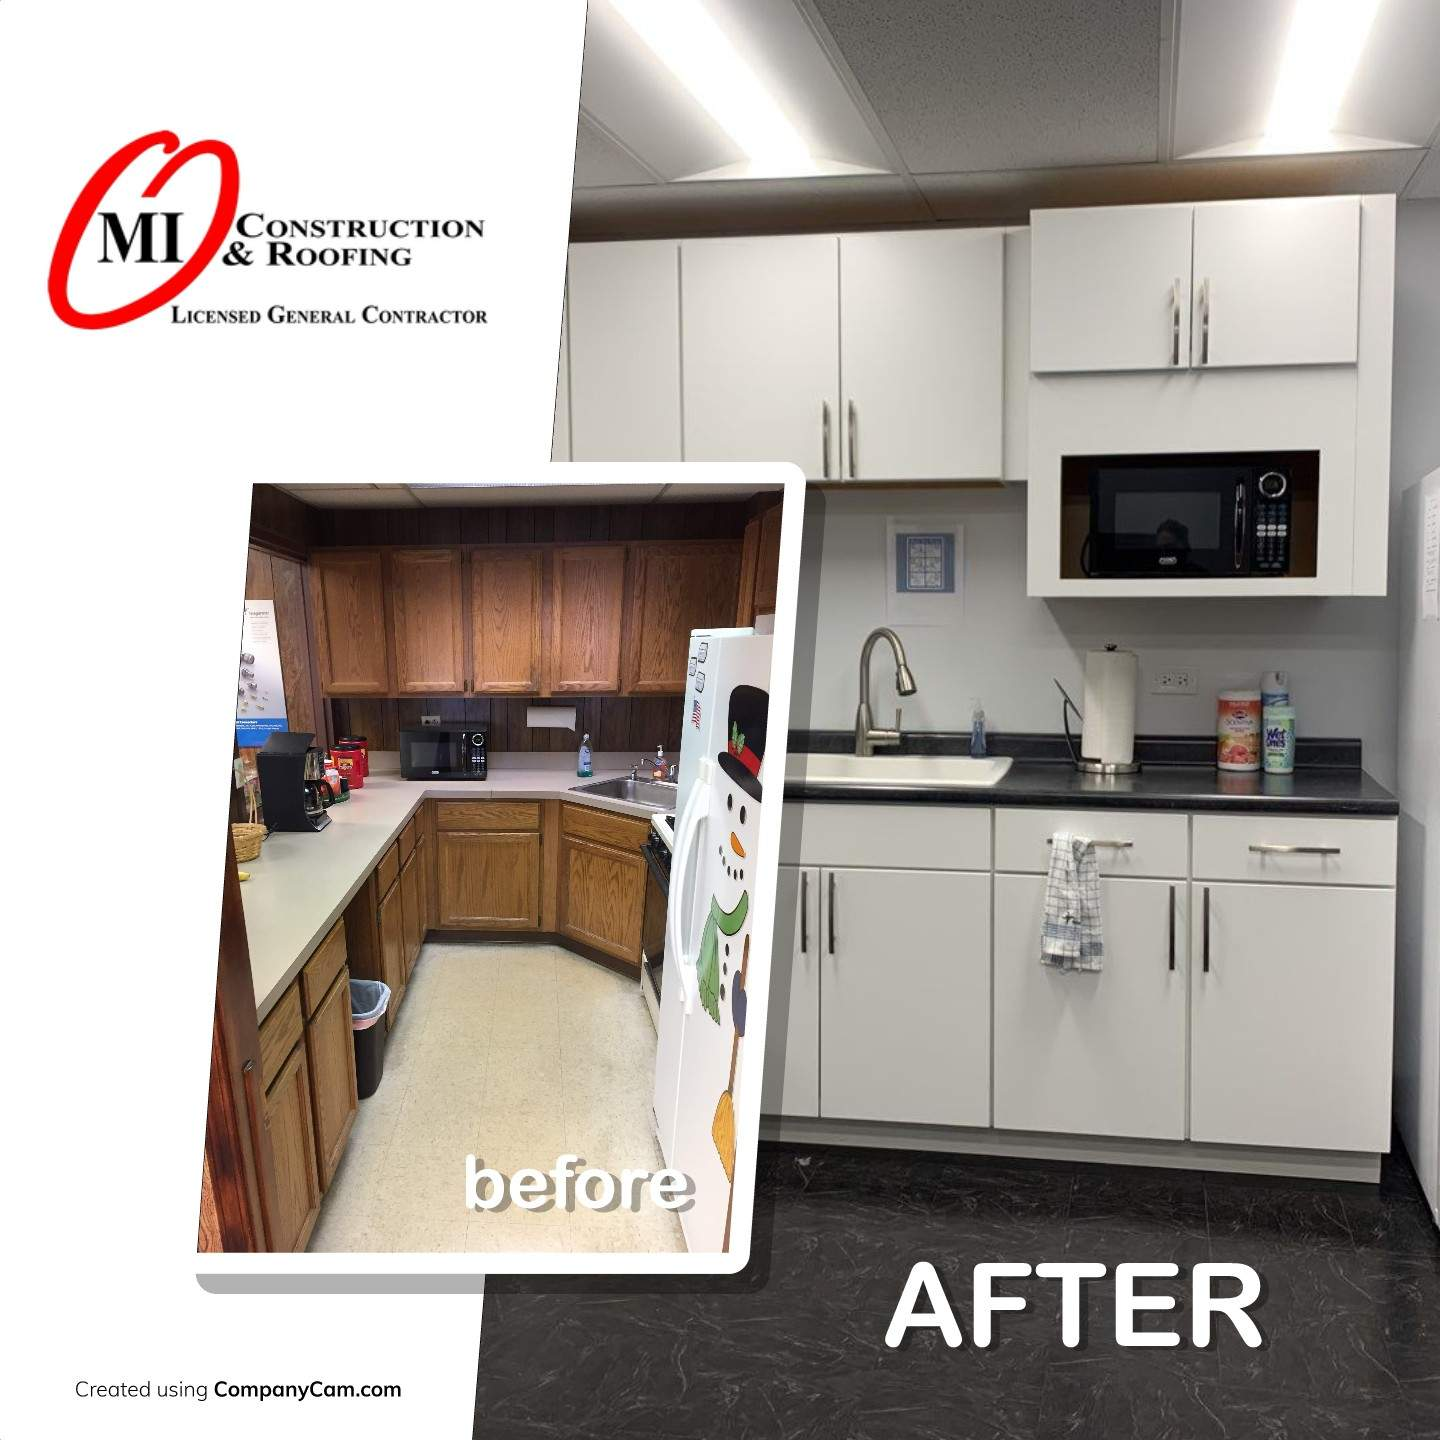 Before-After Kitchen 01